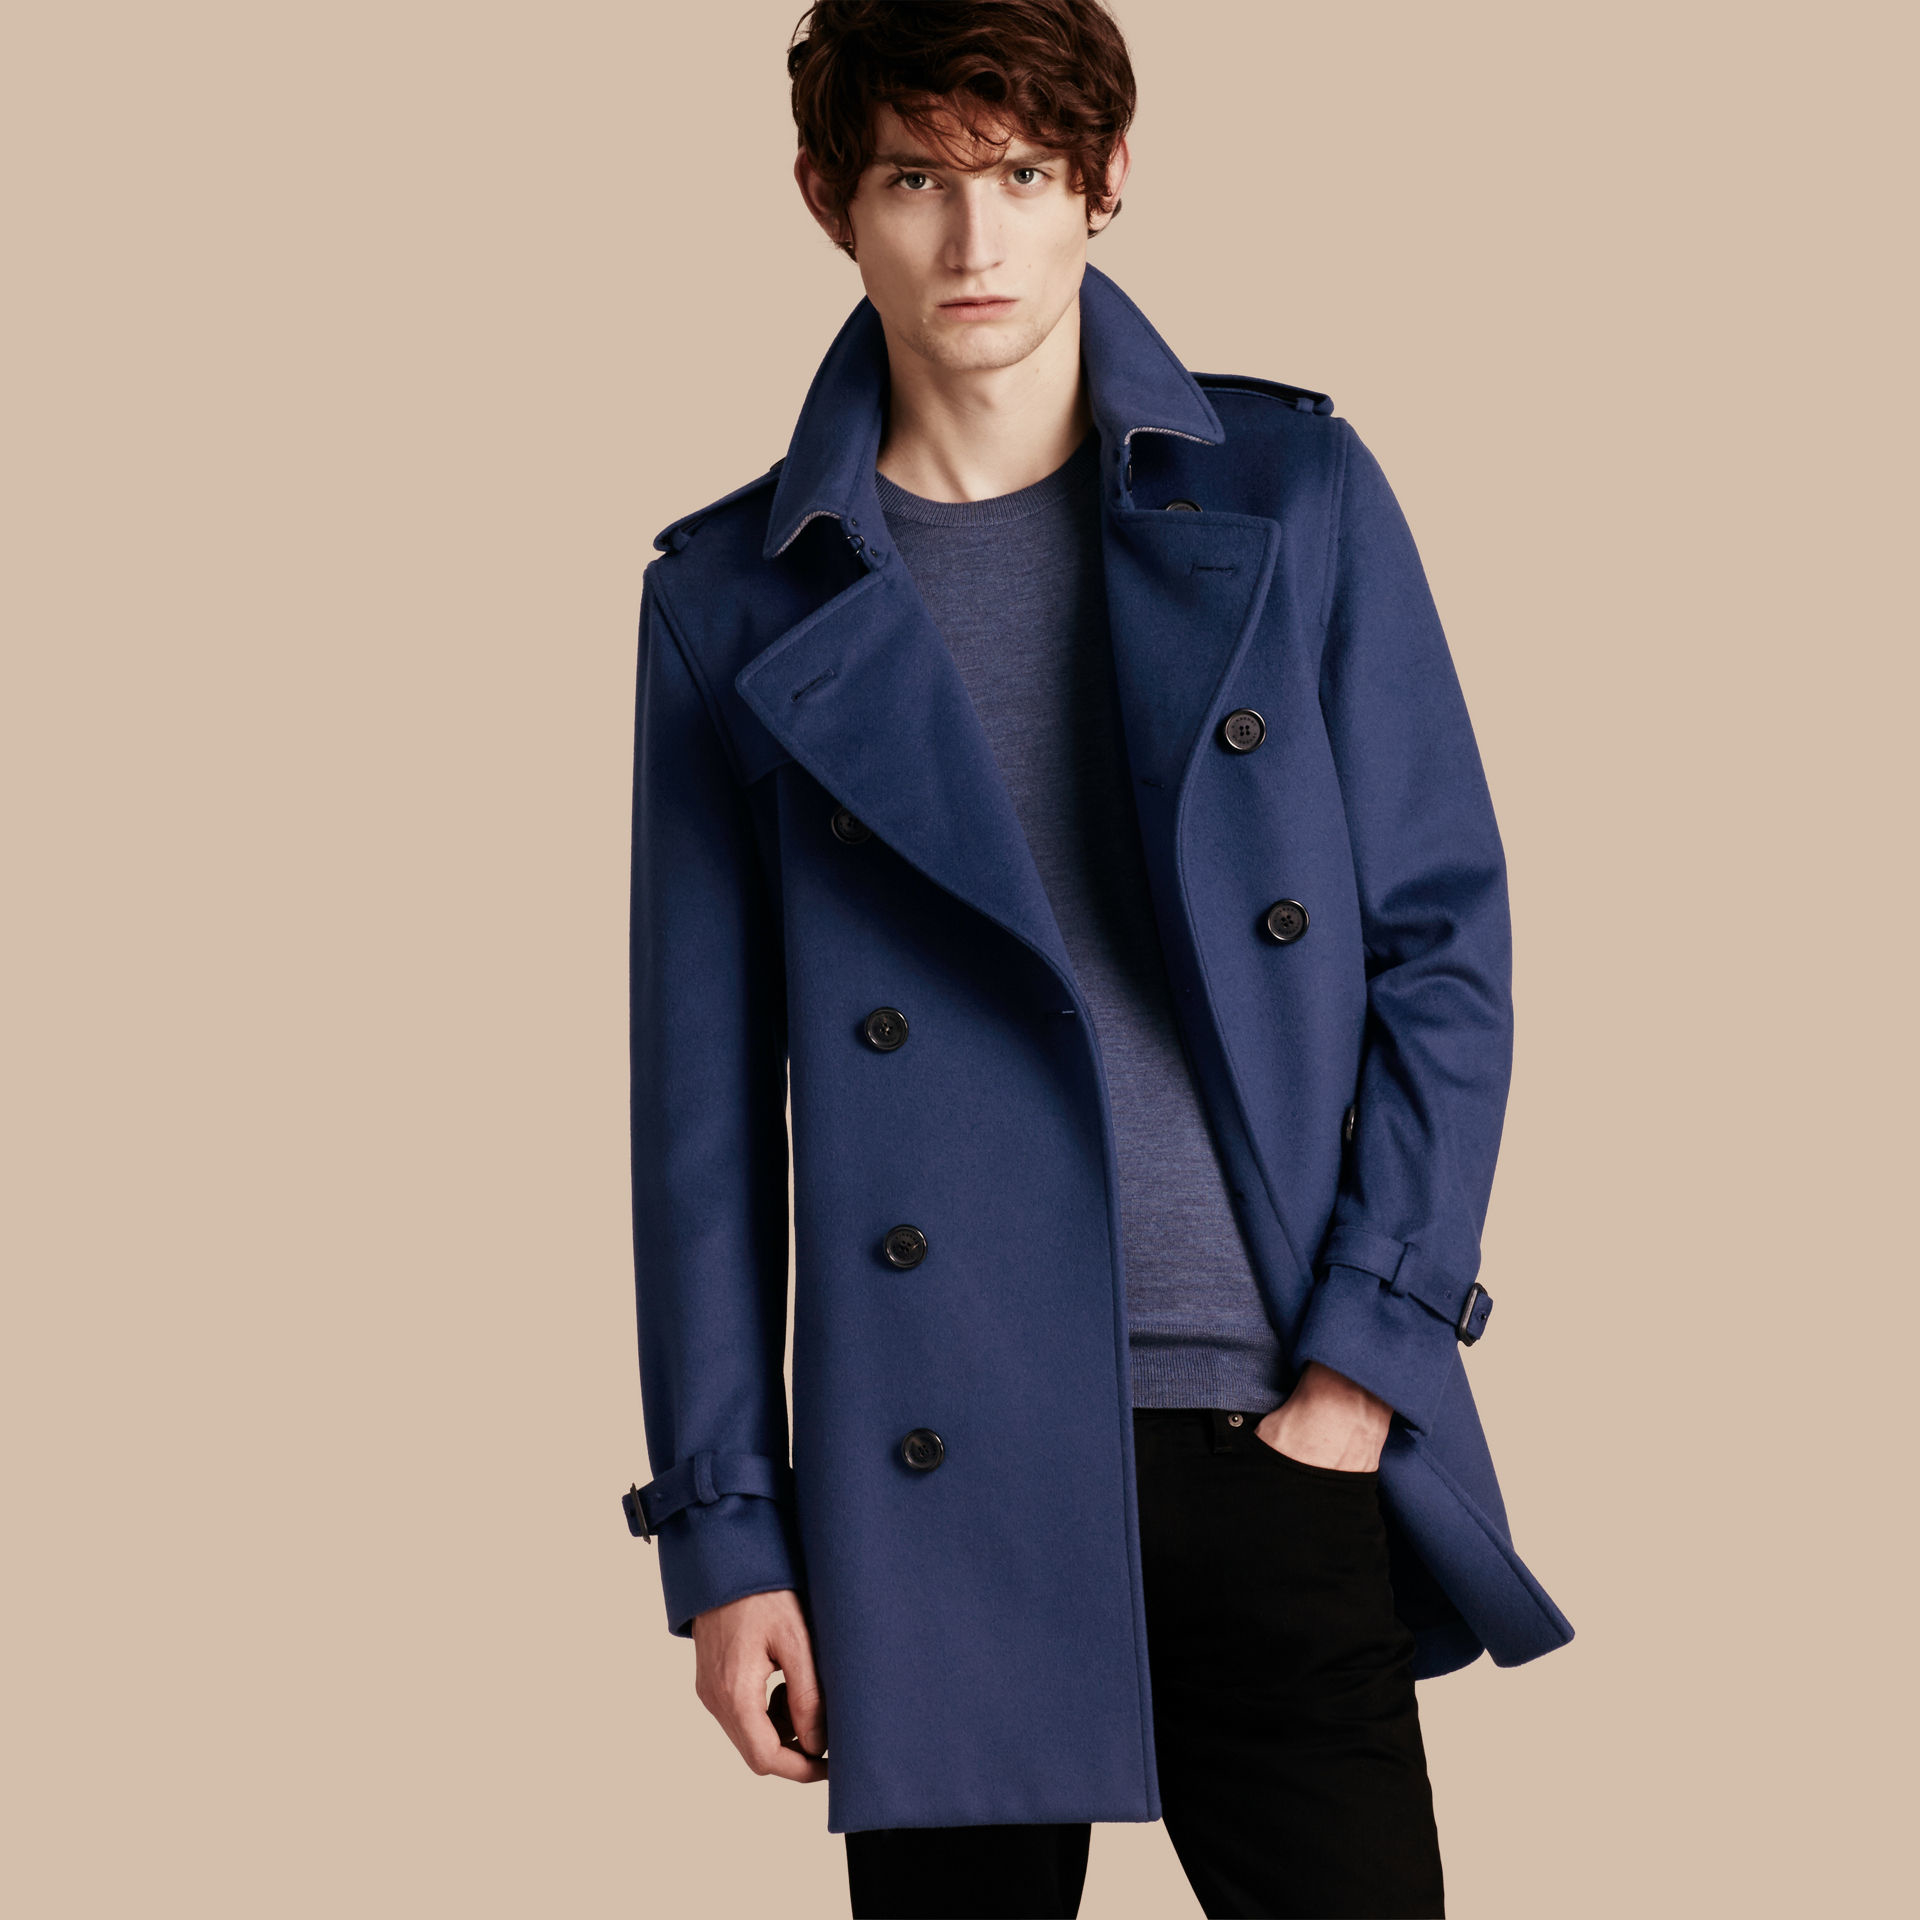 2a1fd0746 Lyst - Burberry Wool Cashmere Trench Coat in Blue for Men